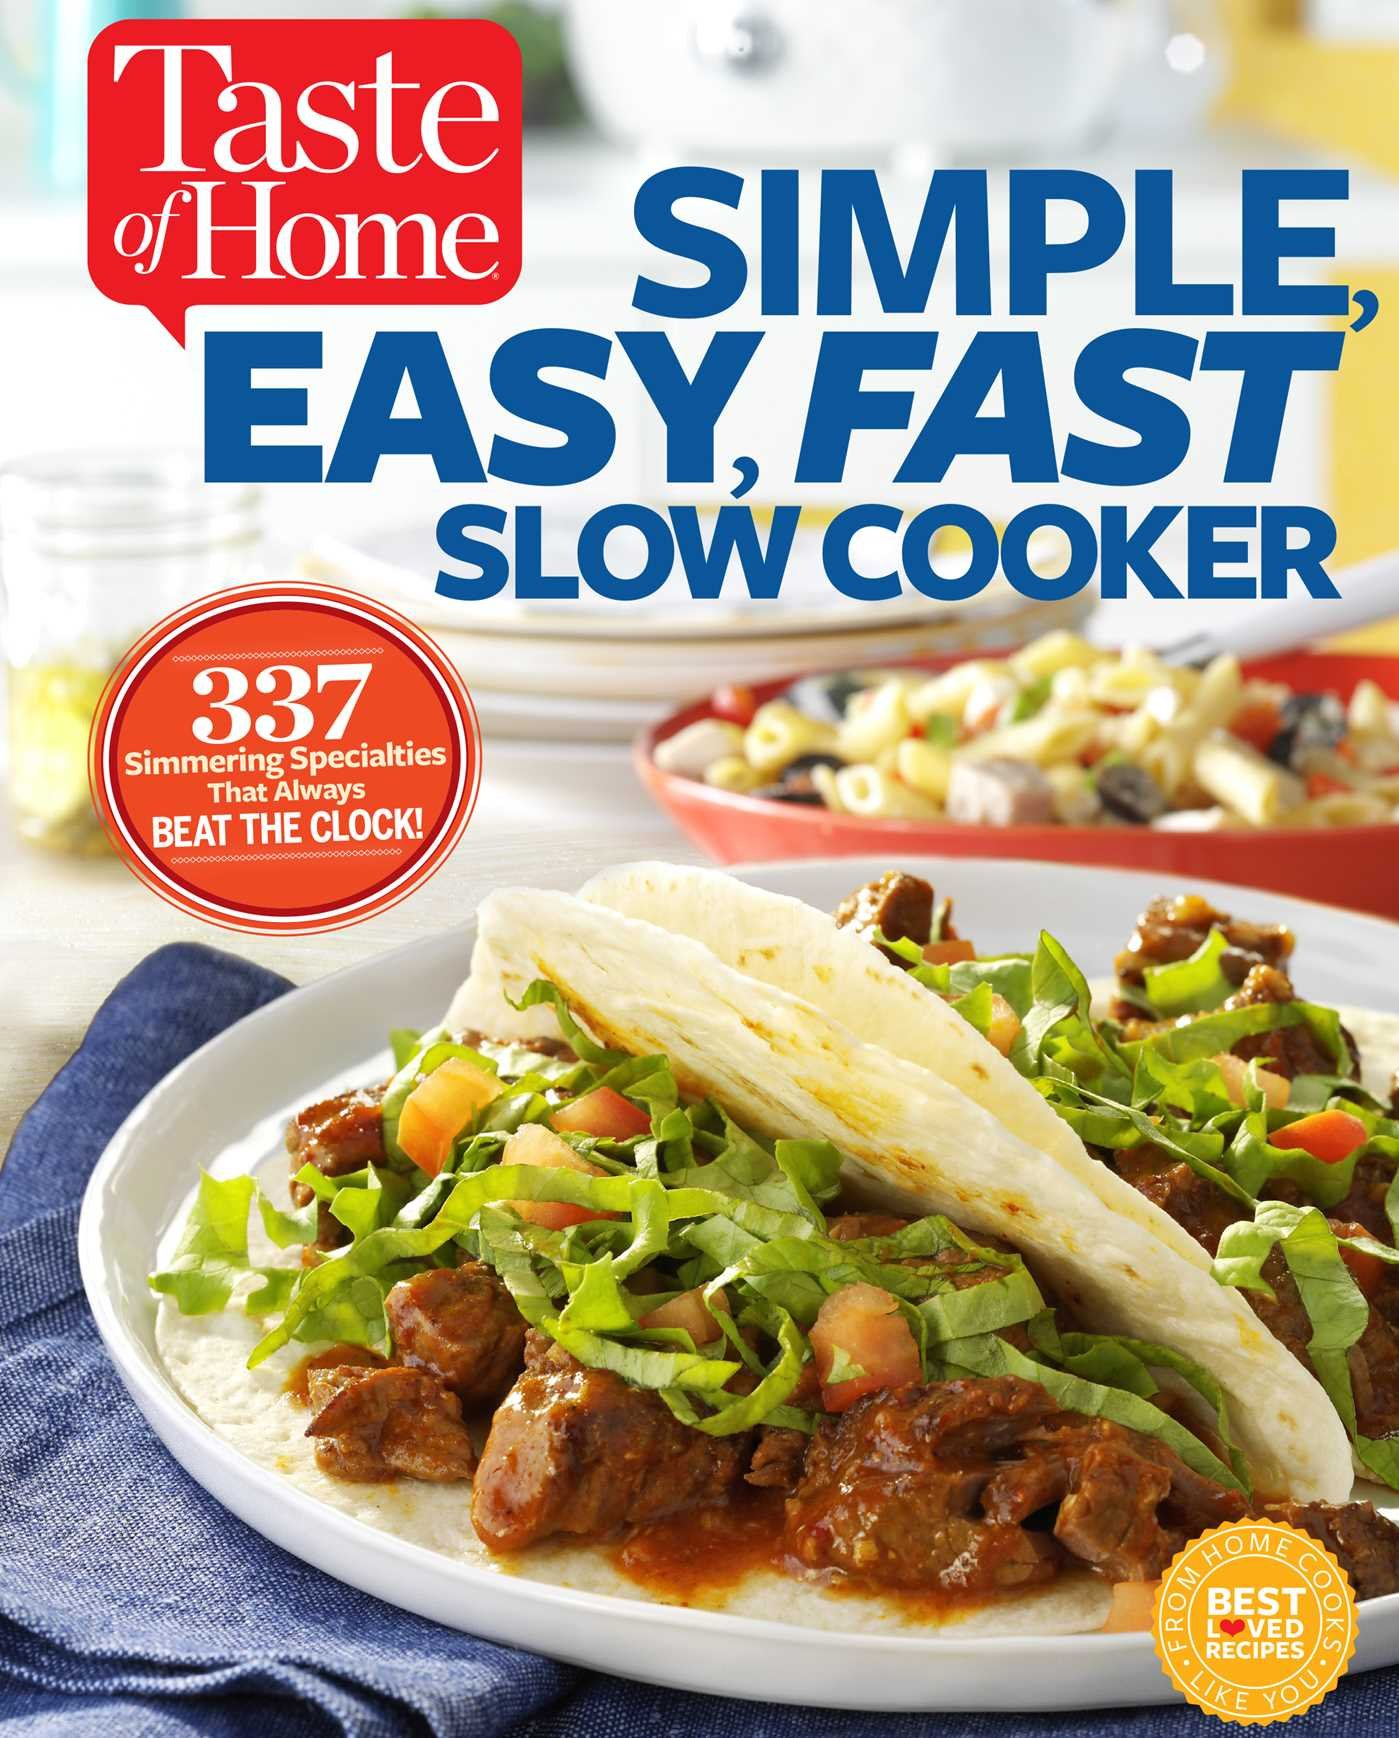 Taste of Home Simple, Easy, Fast Slow Cooker: 385 slow-cooked recipes that beat the clock pdf